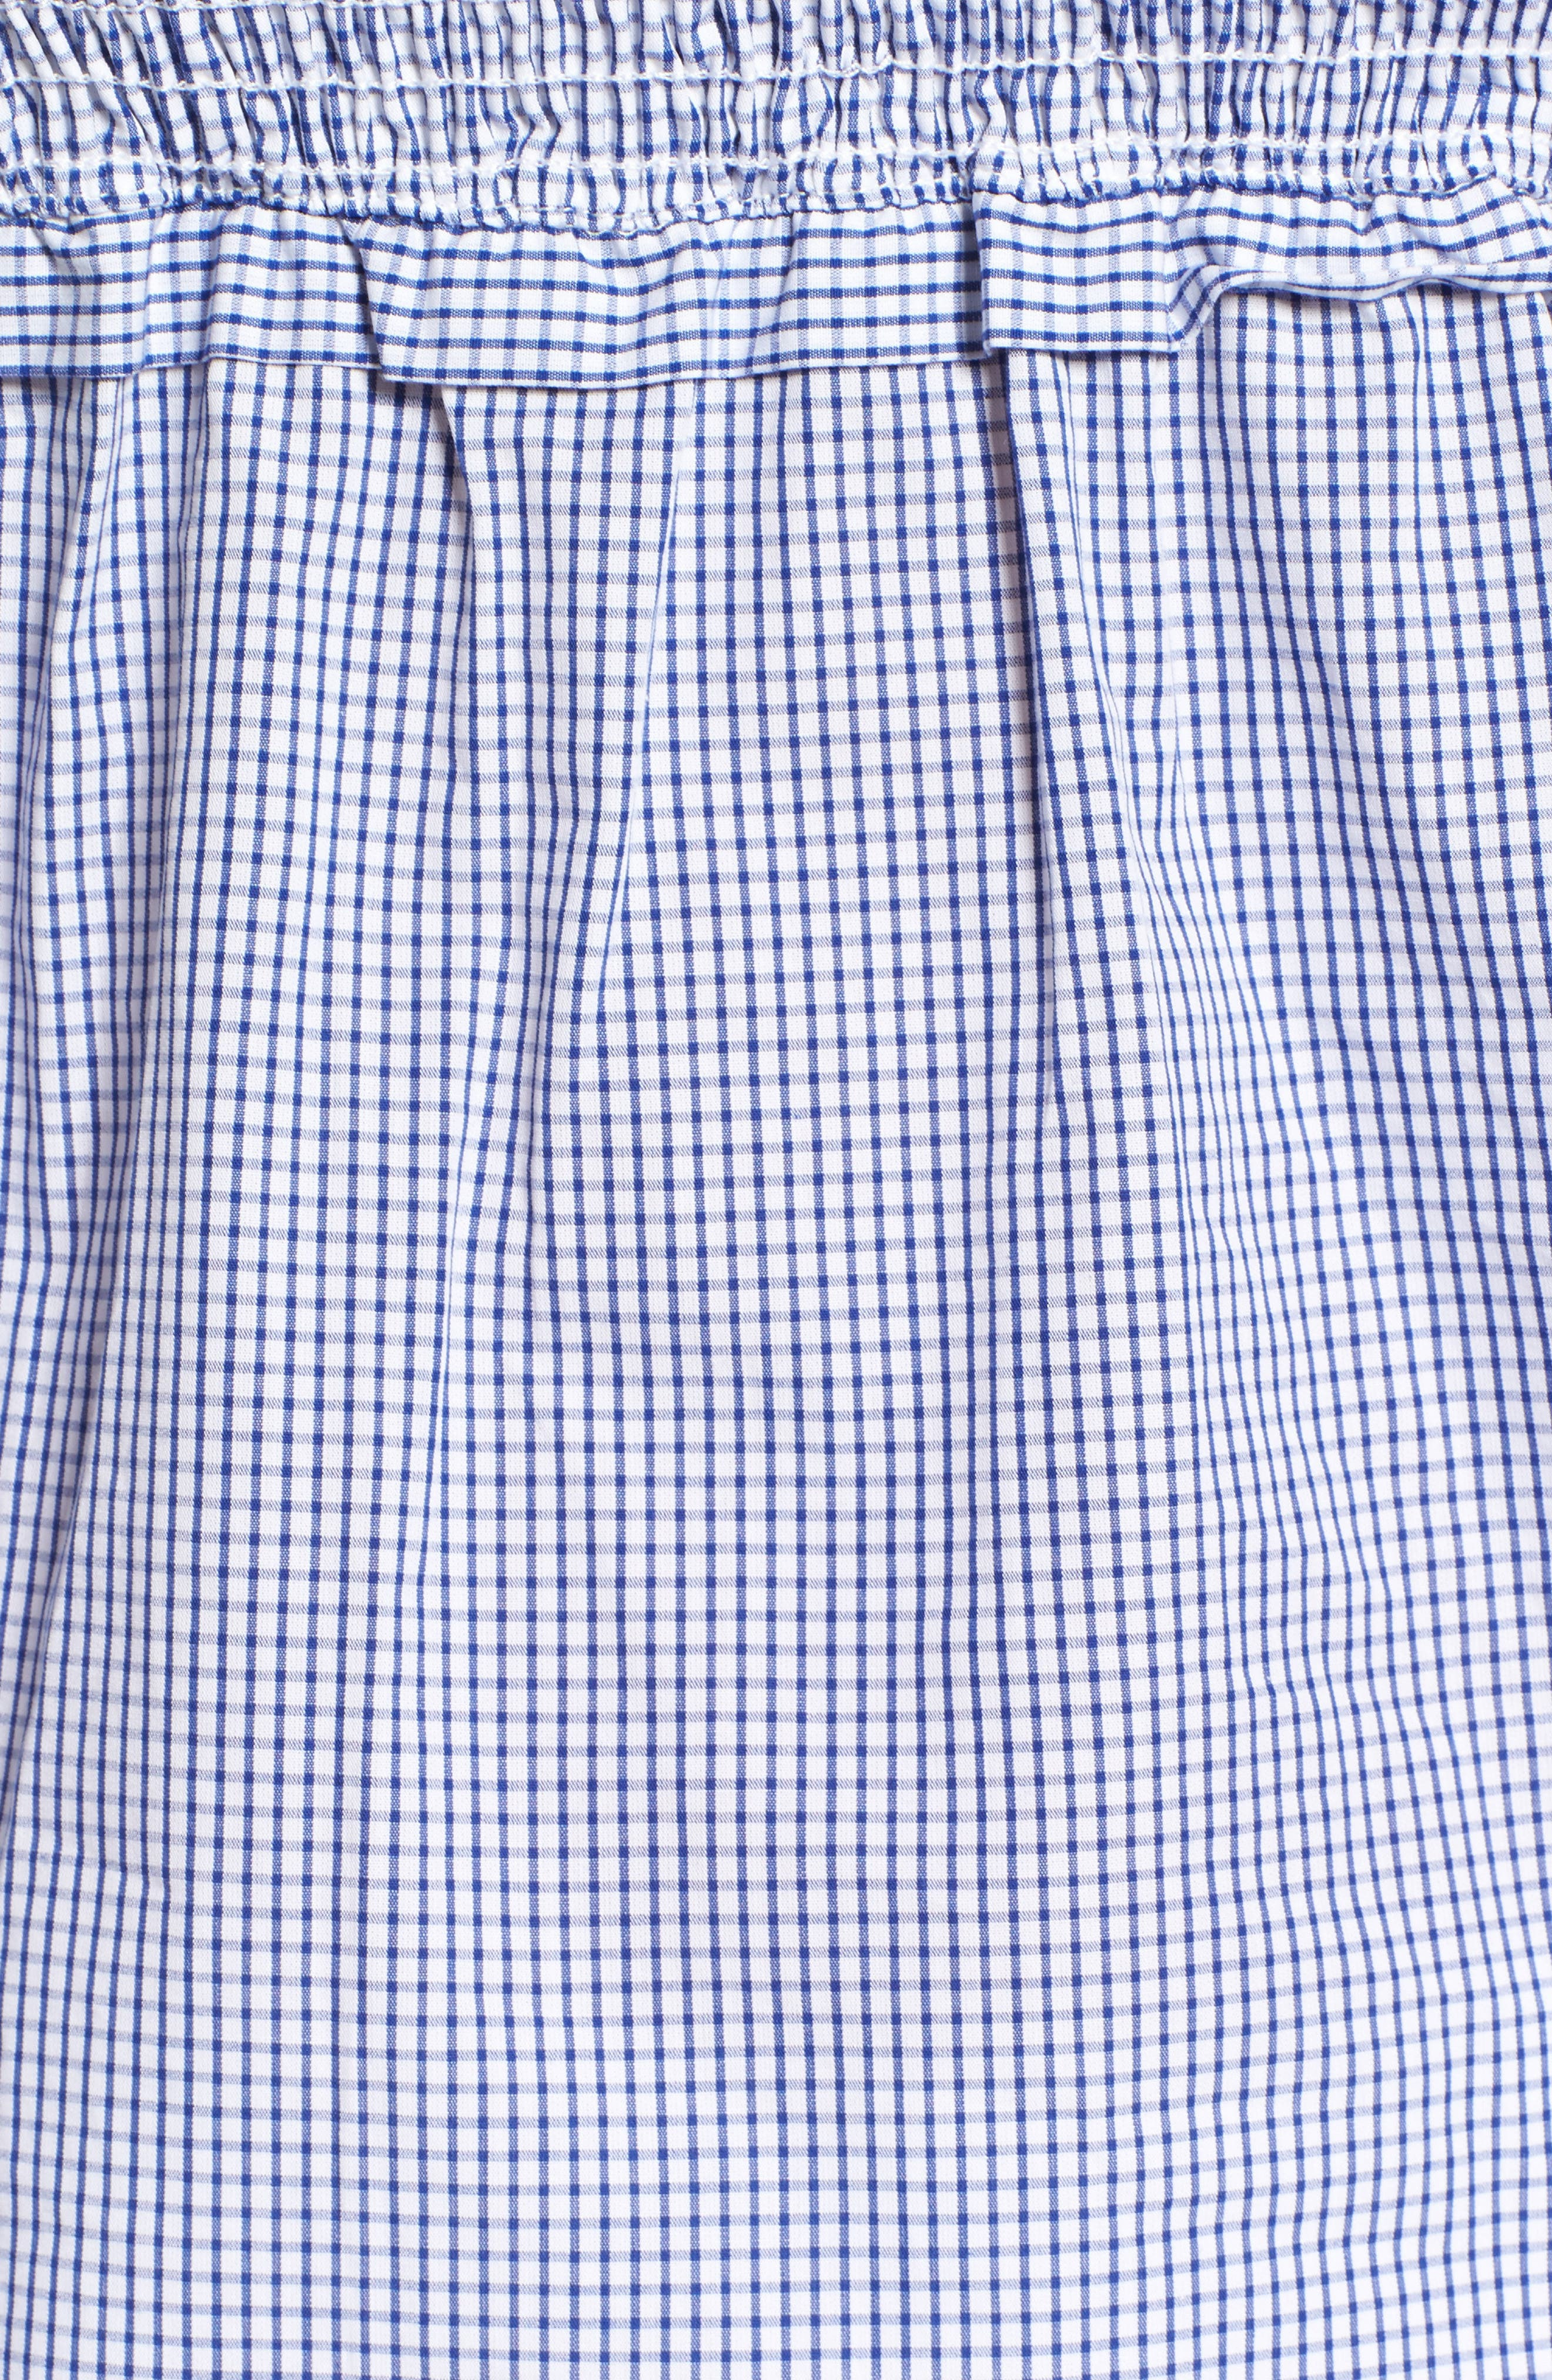 Libby Smocked Off the Shoulder Top,                             Alternate thumbnail 5, color,                             Blue Checker